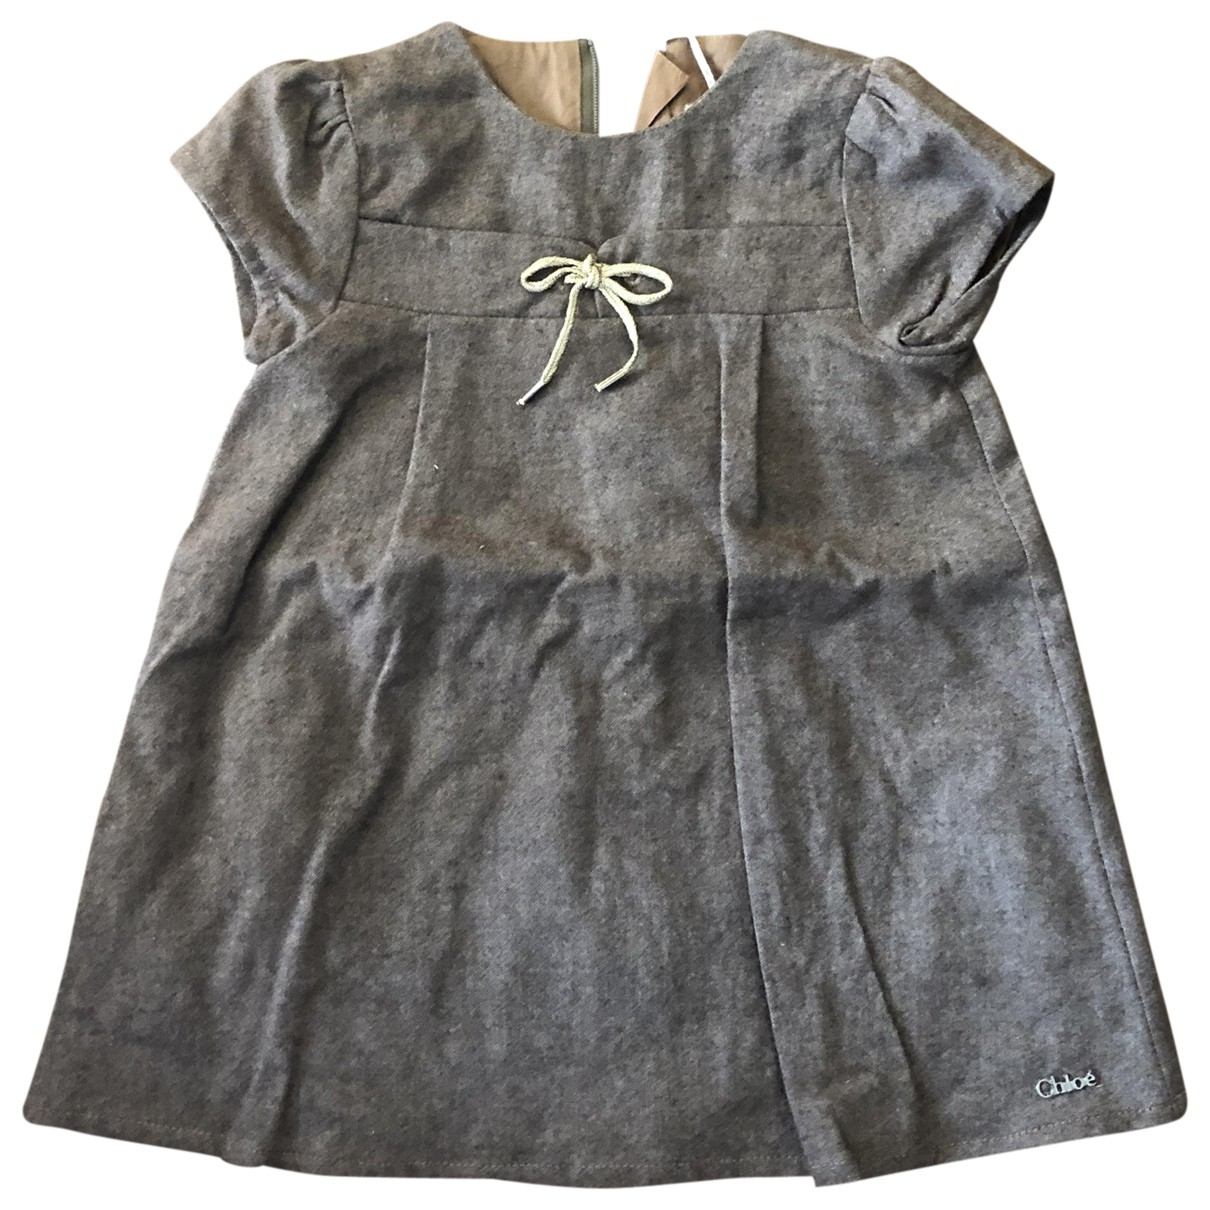 Chloé \N Brown Wool dress for Kids 6 months - up to 67cm FR